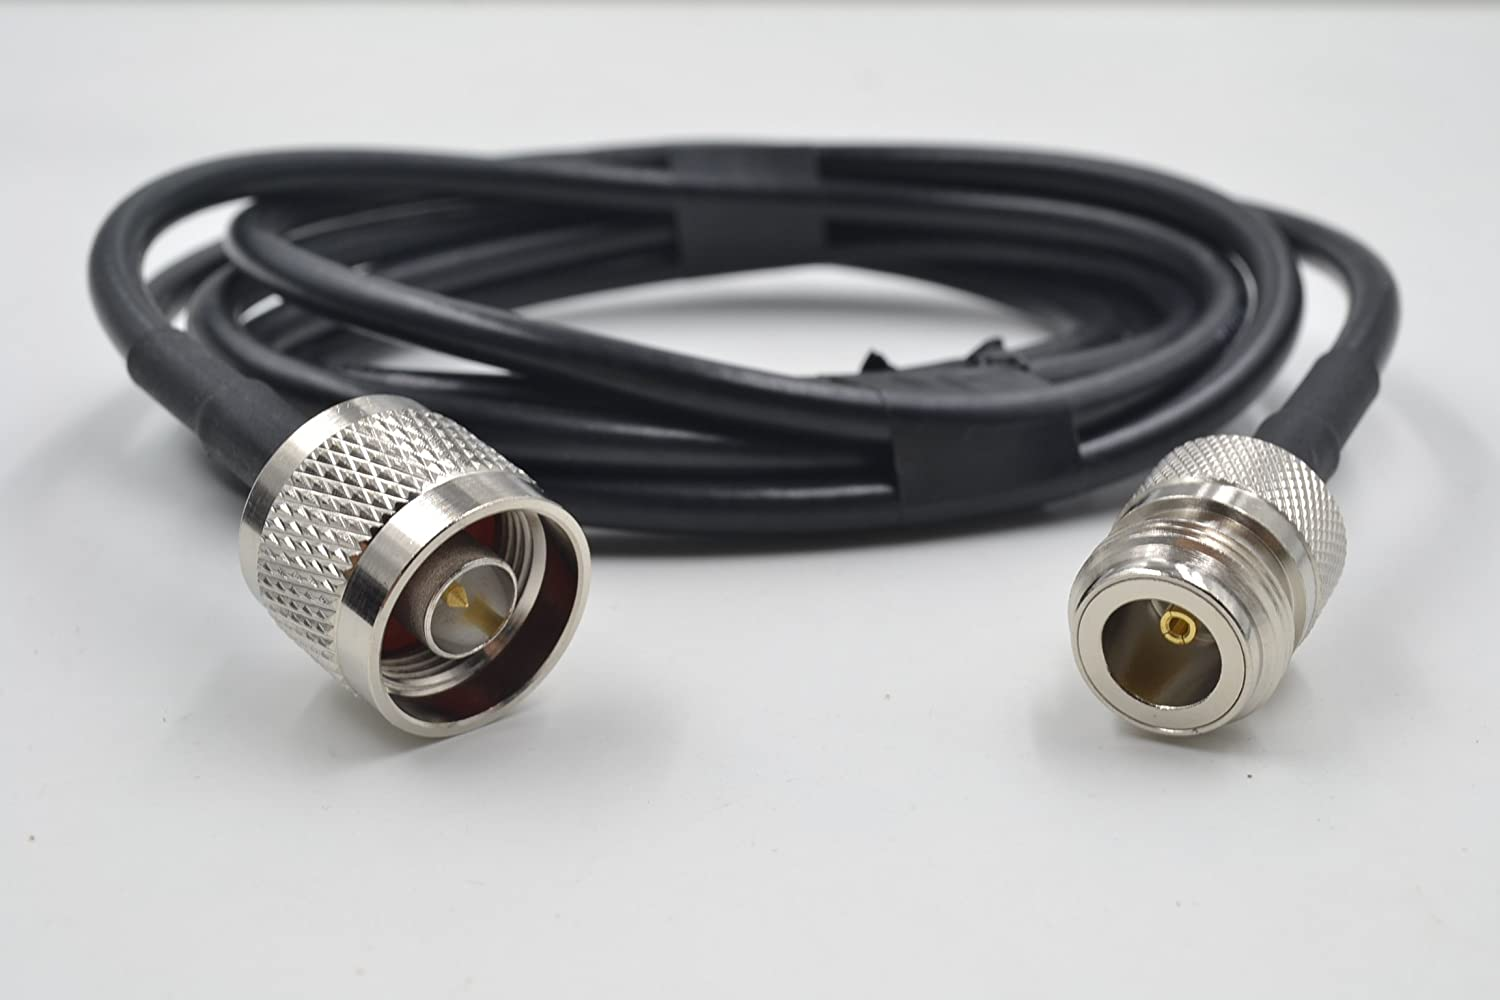 PT400-1000-SNM-SNF: LMR400 Type Equivalent Bulk Coax Cable - 1000 Ft - N Male and N Female Connectors